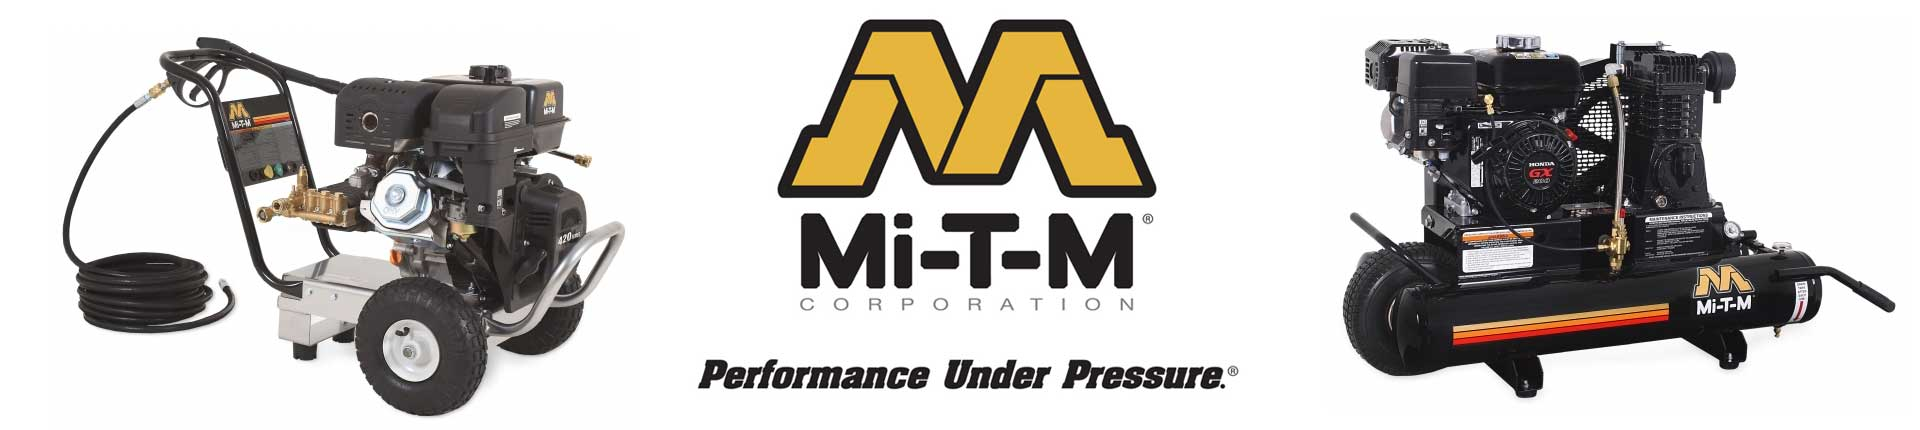 Mi-T-M Equipment Sales in Southeastern Missouri